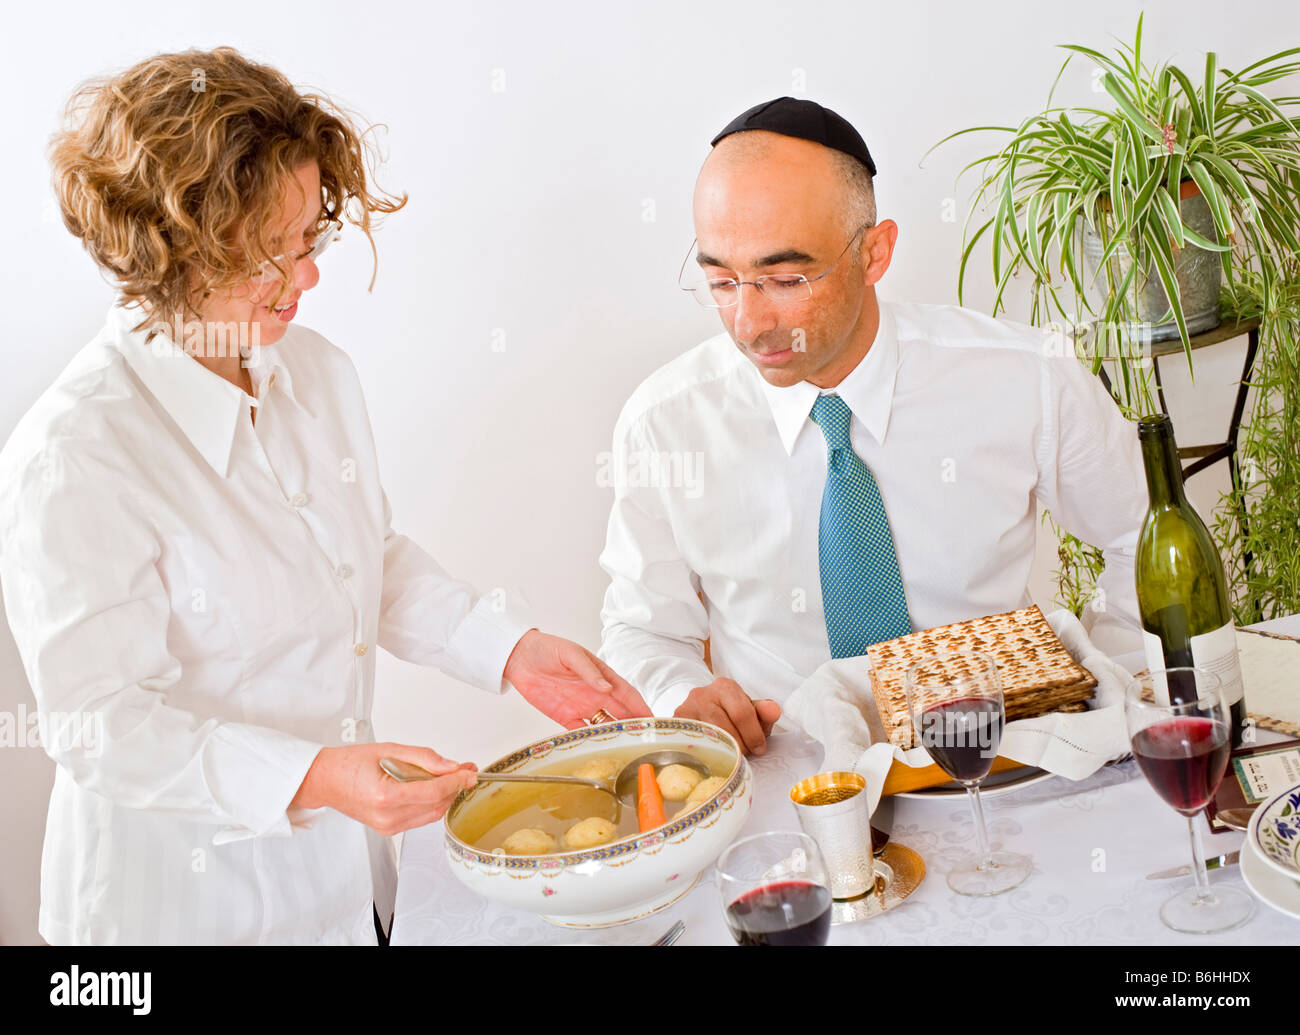 mother serving Kneidel soup at Passover family Seder - Stock Image